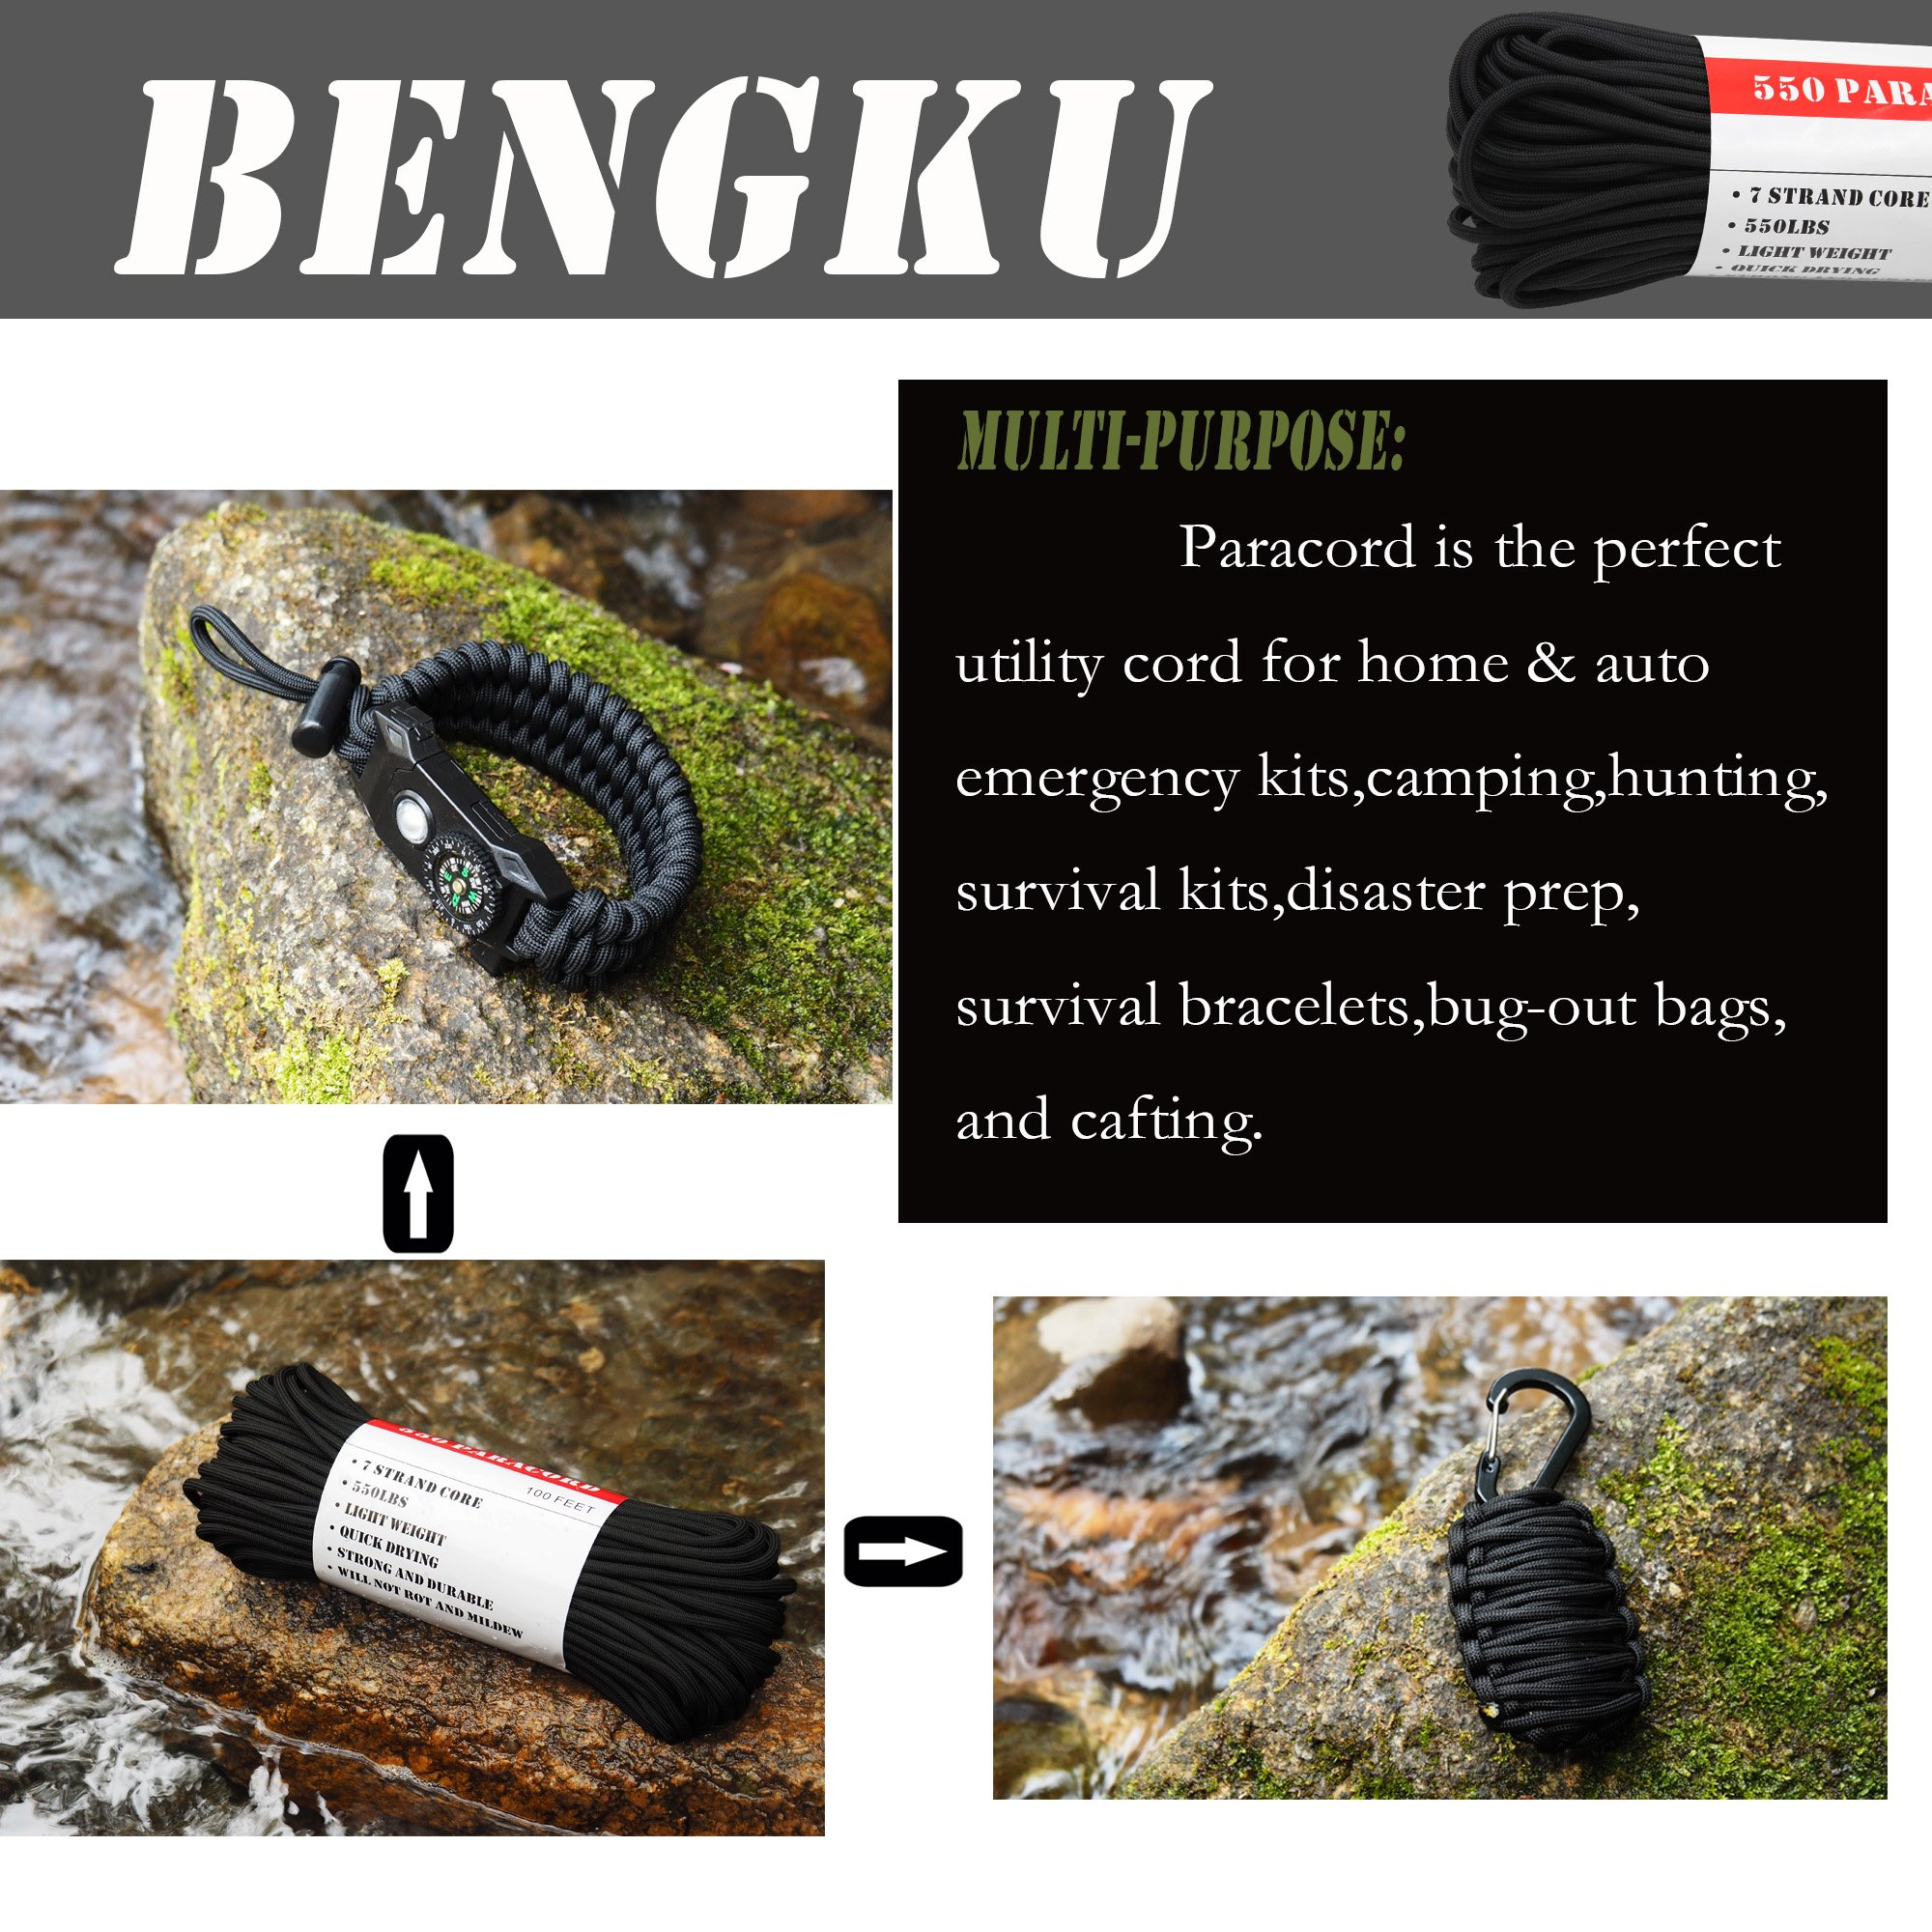 BENGKU Outdoor Survival Mil-SPEC 550lb Paracord/Parachute Cord(MIl-C-5040-H),50Feet,100% Nylon. (Black, 50) by BENGKU (Image #4)